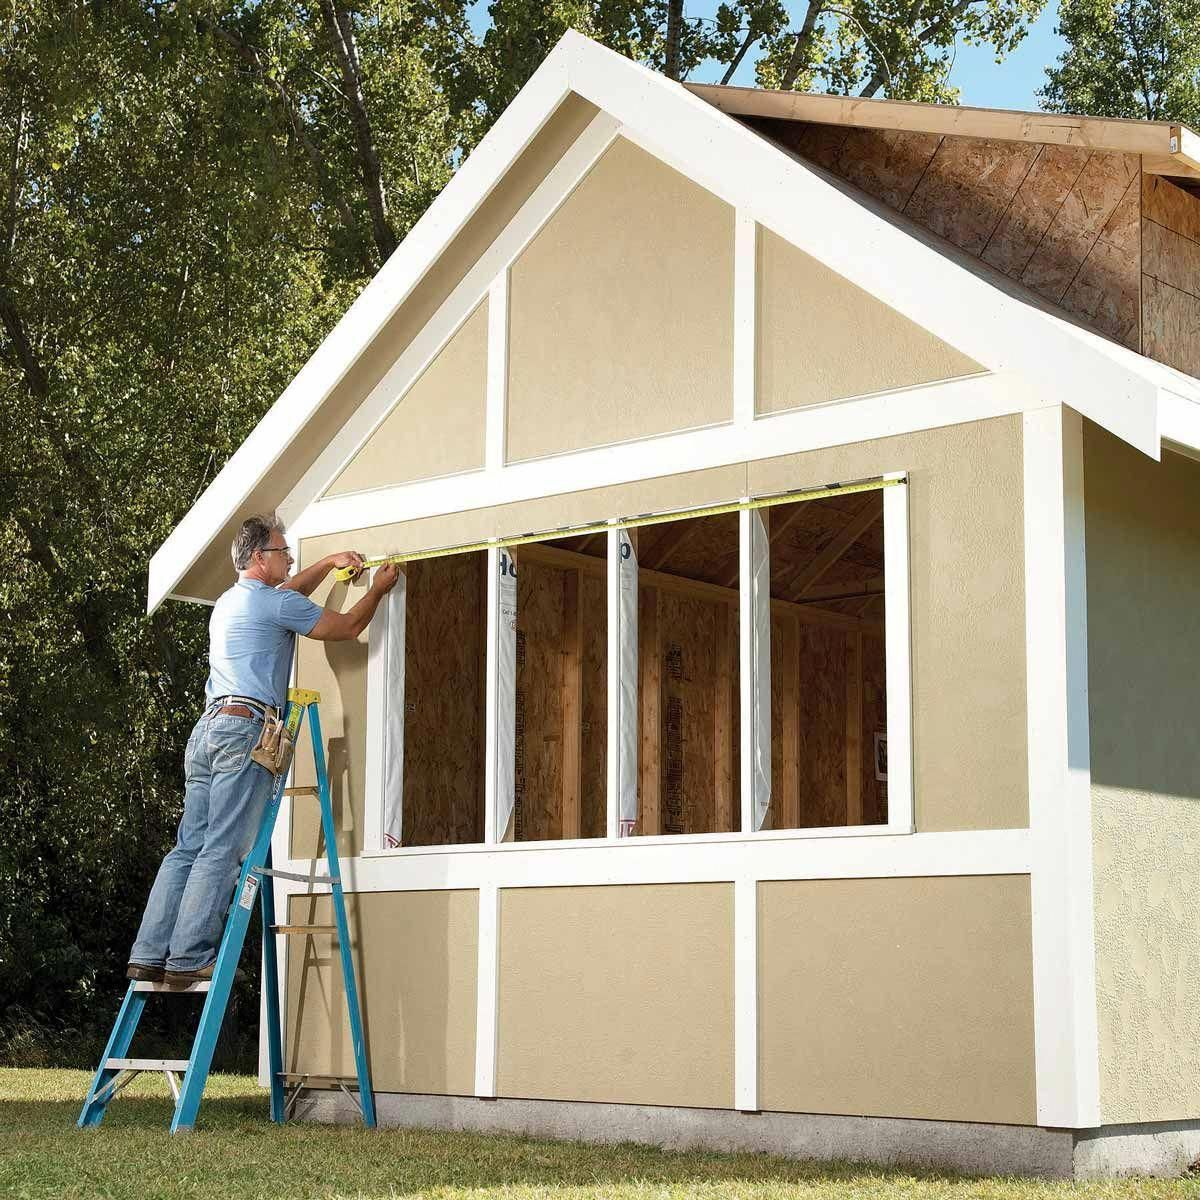 Thinking About Diy Sheds 12x12 This Is The Place For More Info Building A Shed Diy Shed Plans Shed Design